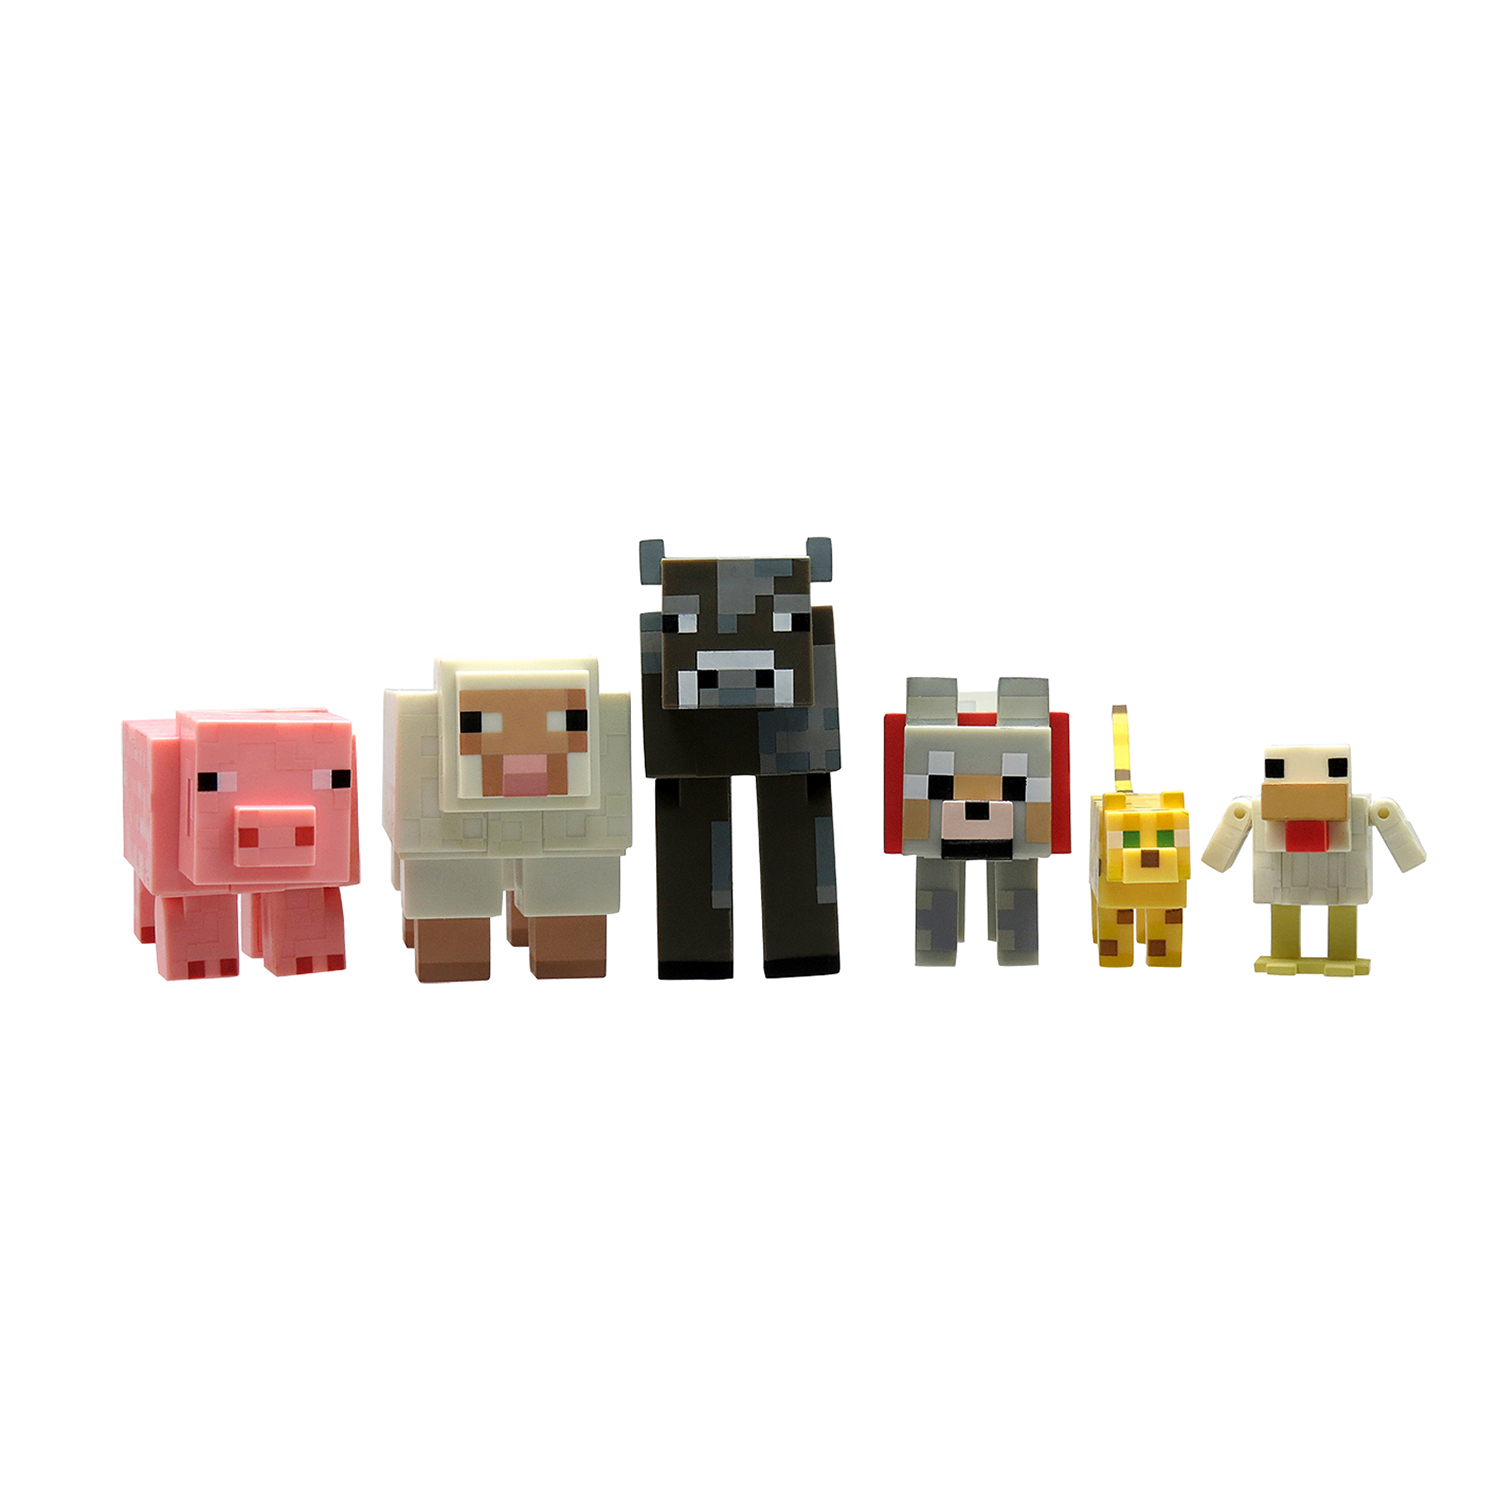 set 6 figurine minecraft, seria 2 - animale